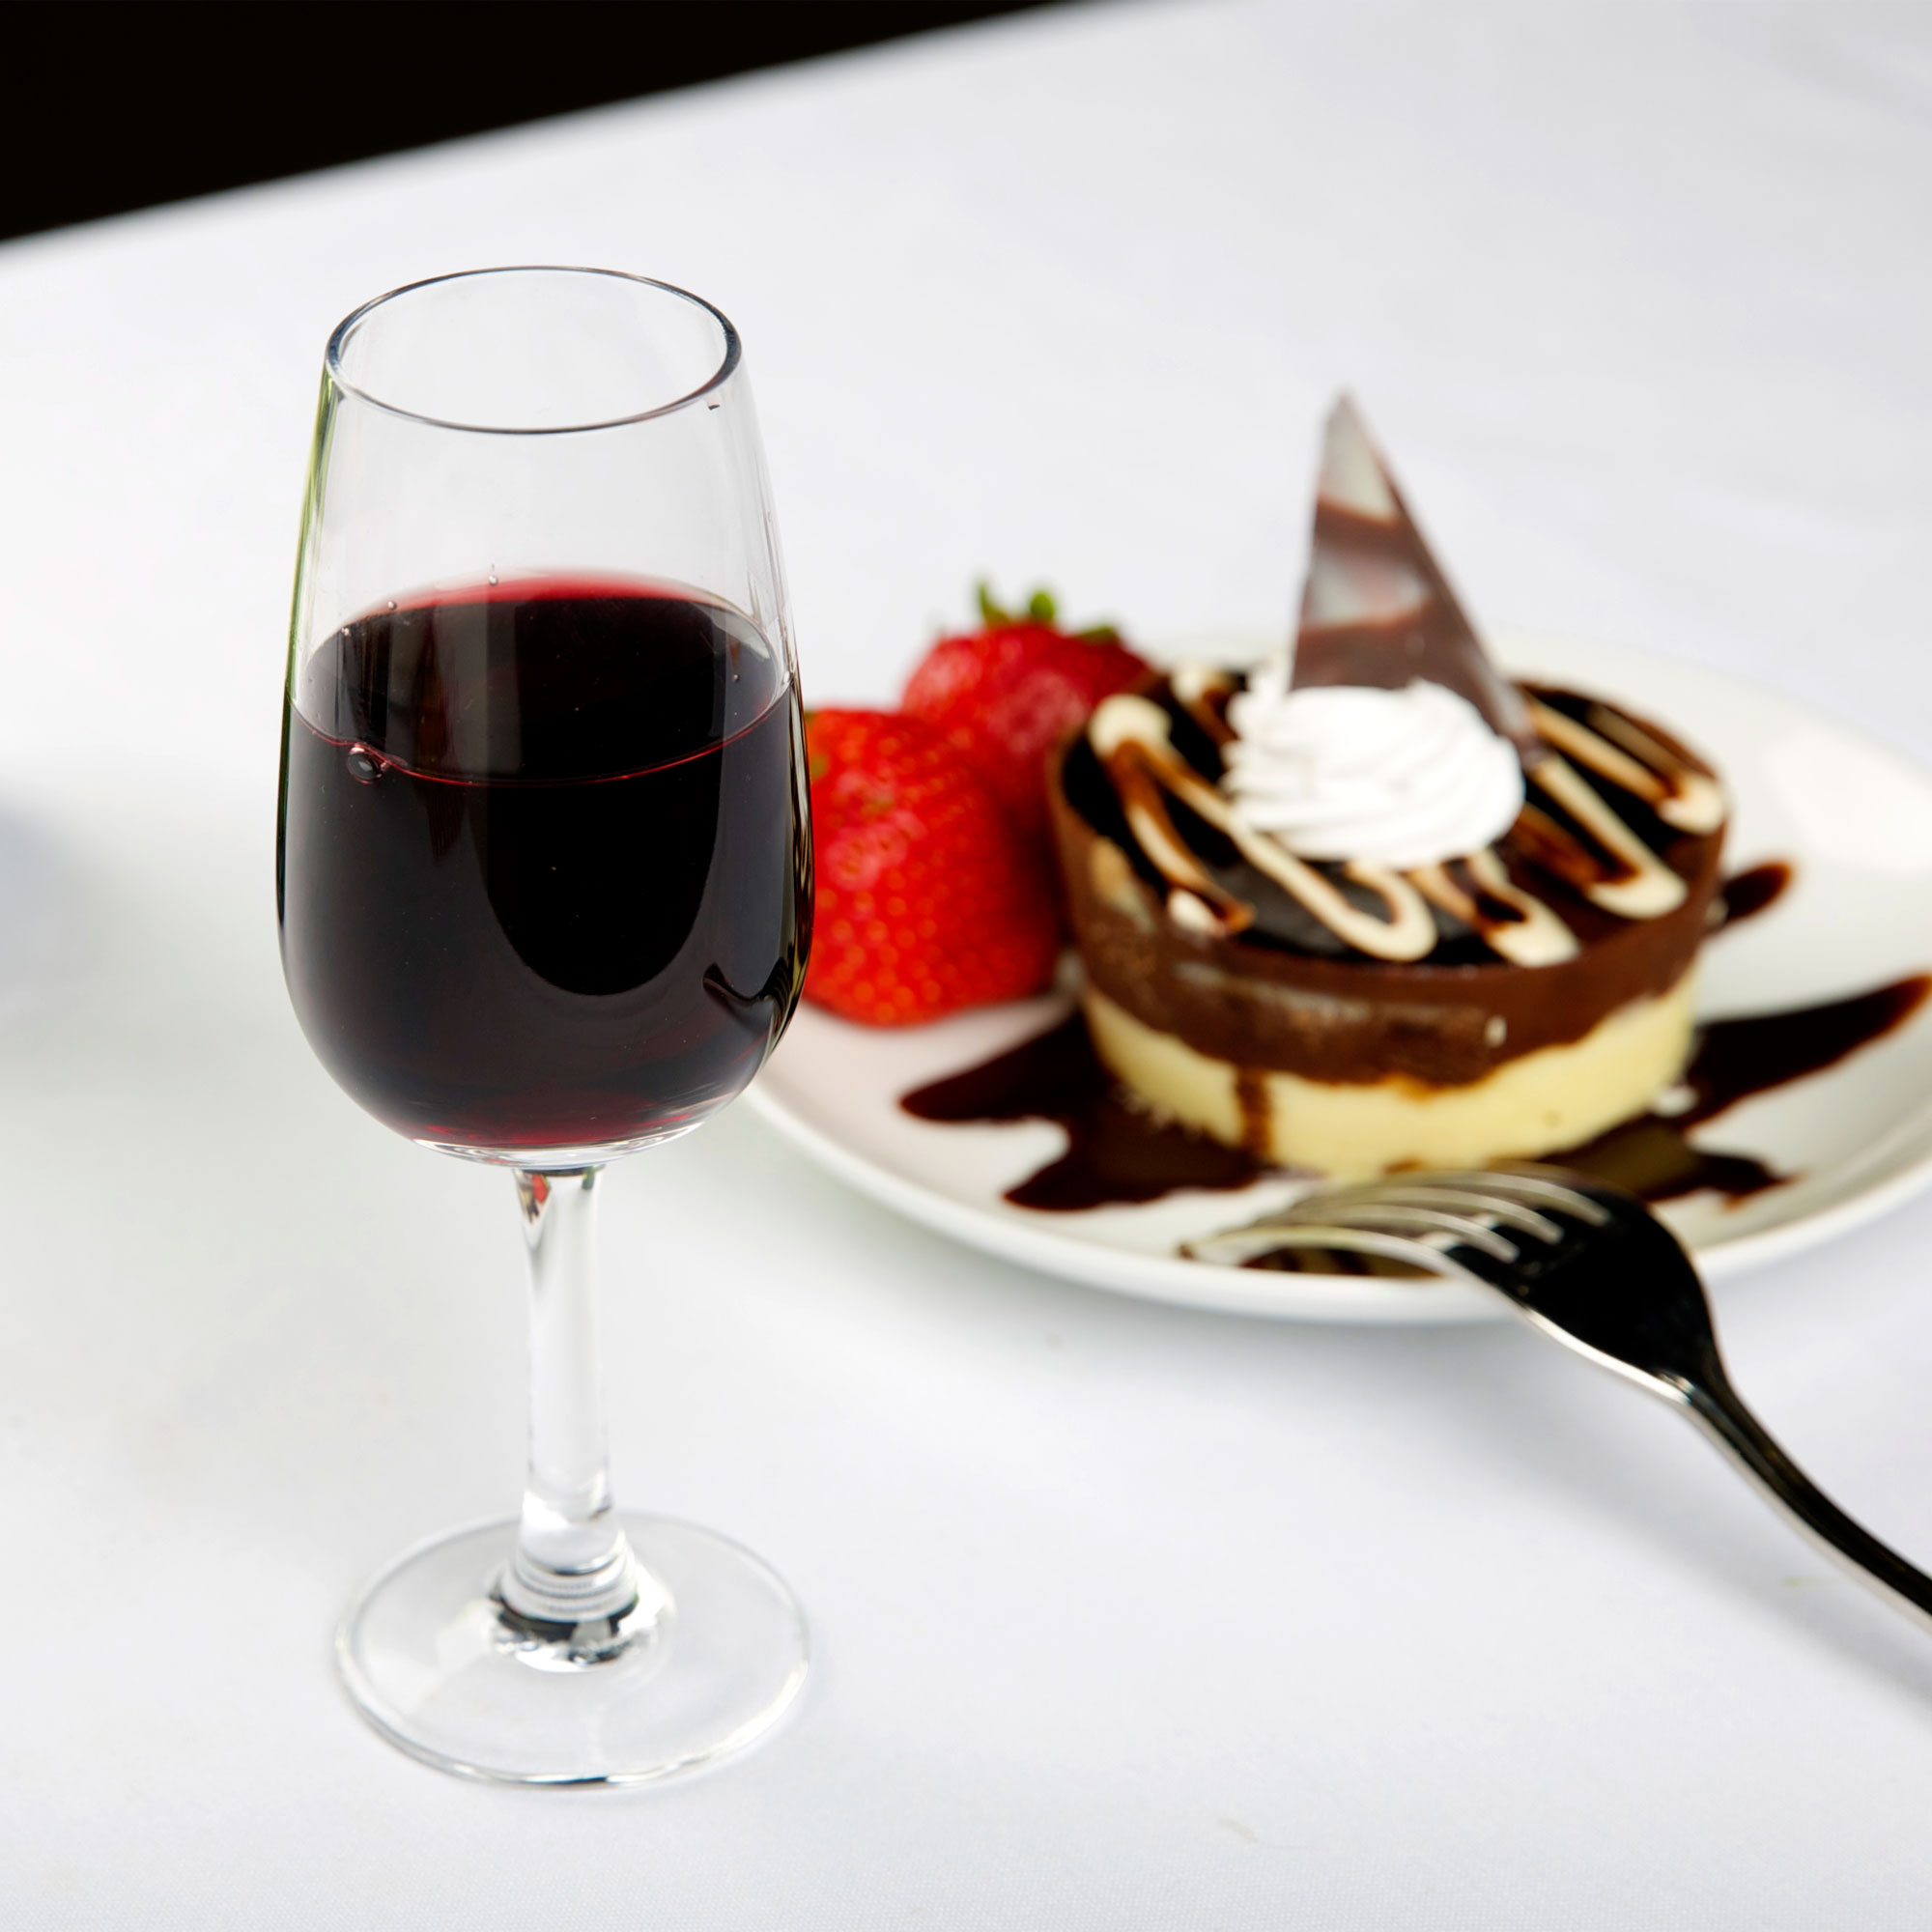 Dessert wine glass filled with port in front of an elegant dessert, complete with fresh strawberries